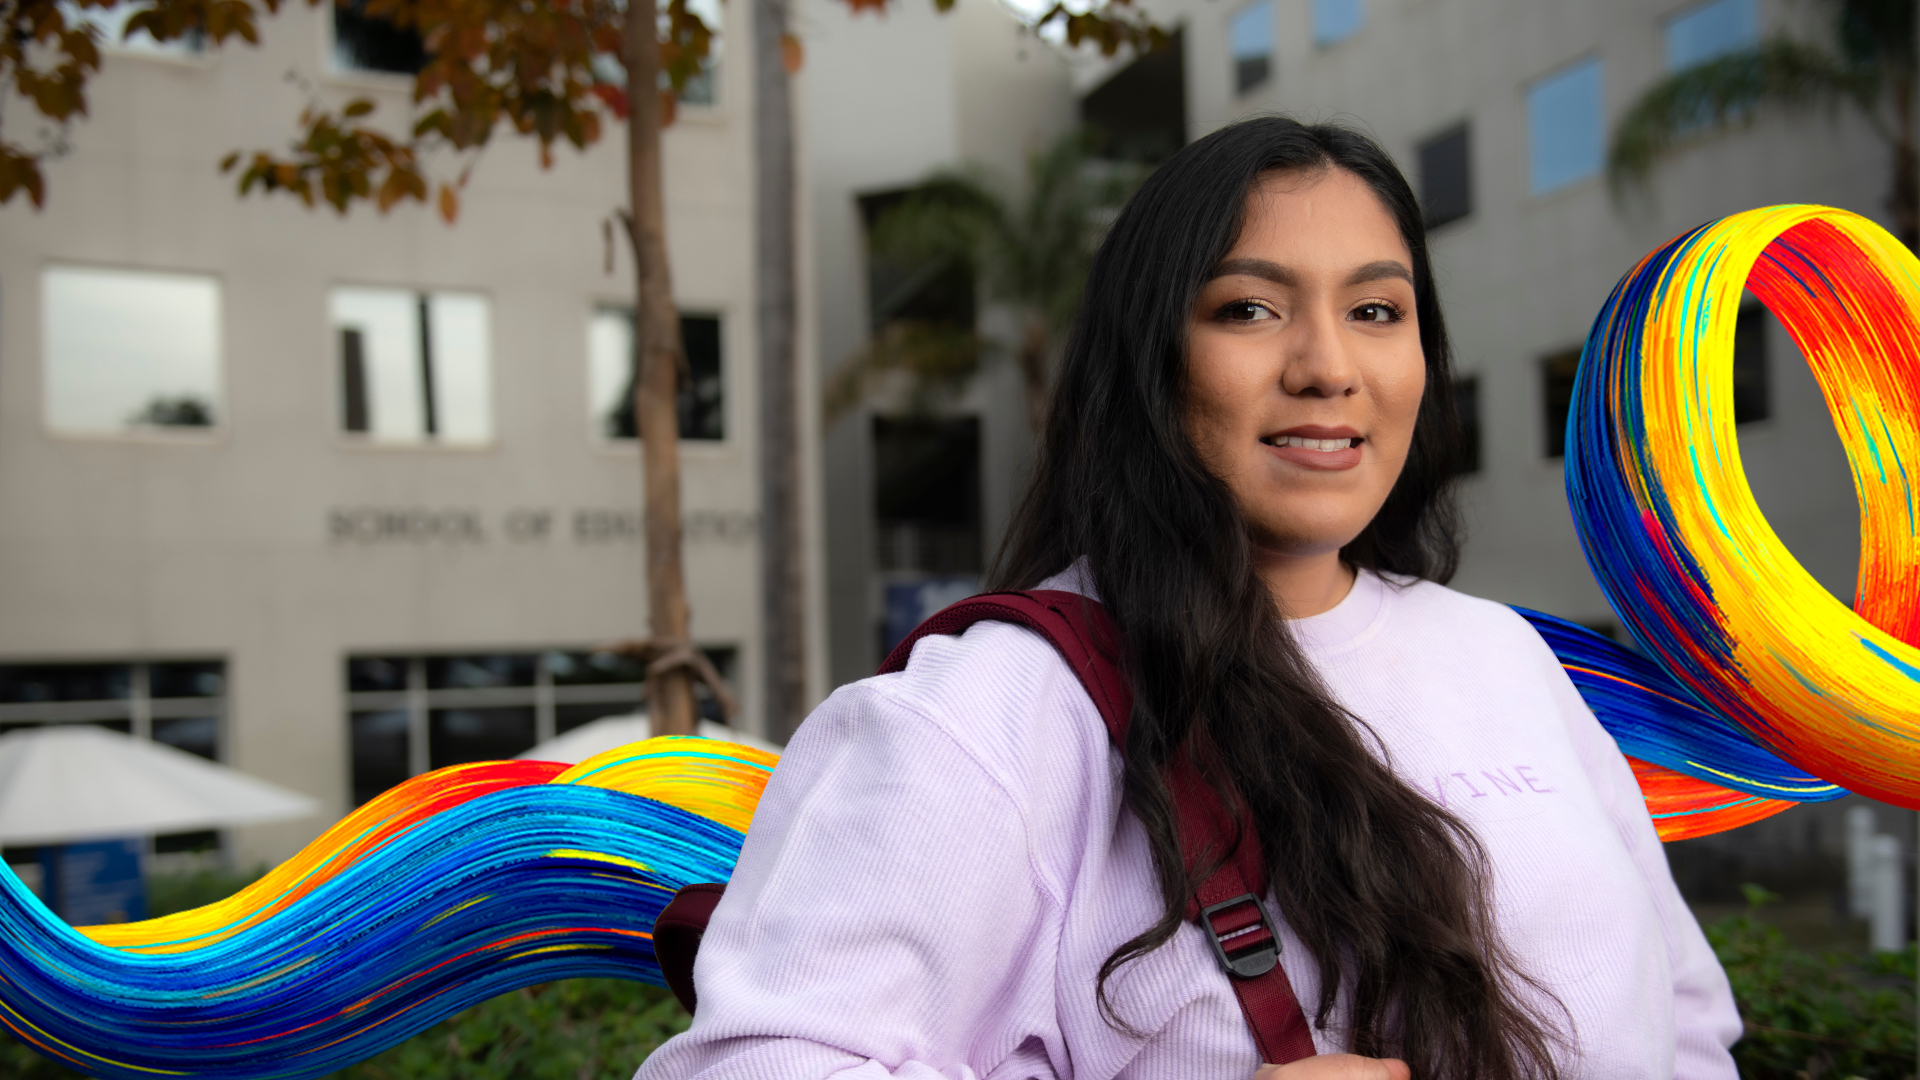 Jocelyne Munoz is a third year student in the school of Education photo:  Steve Zylius/UCI